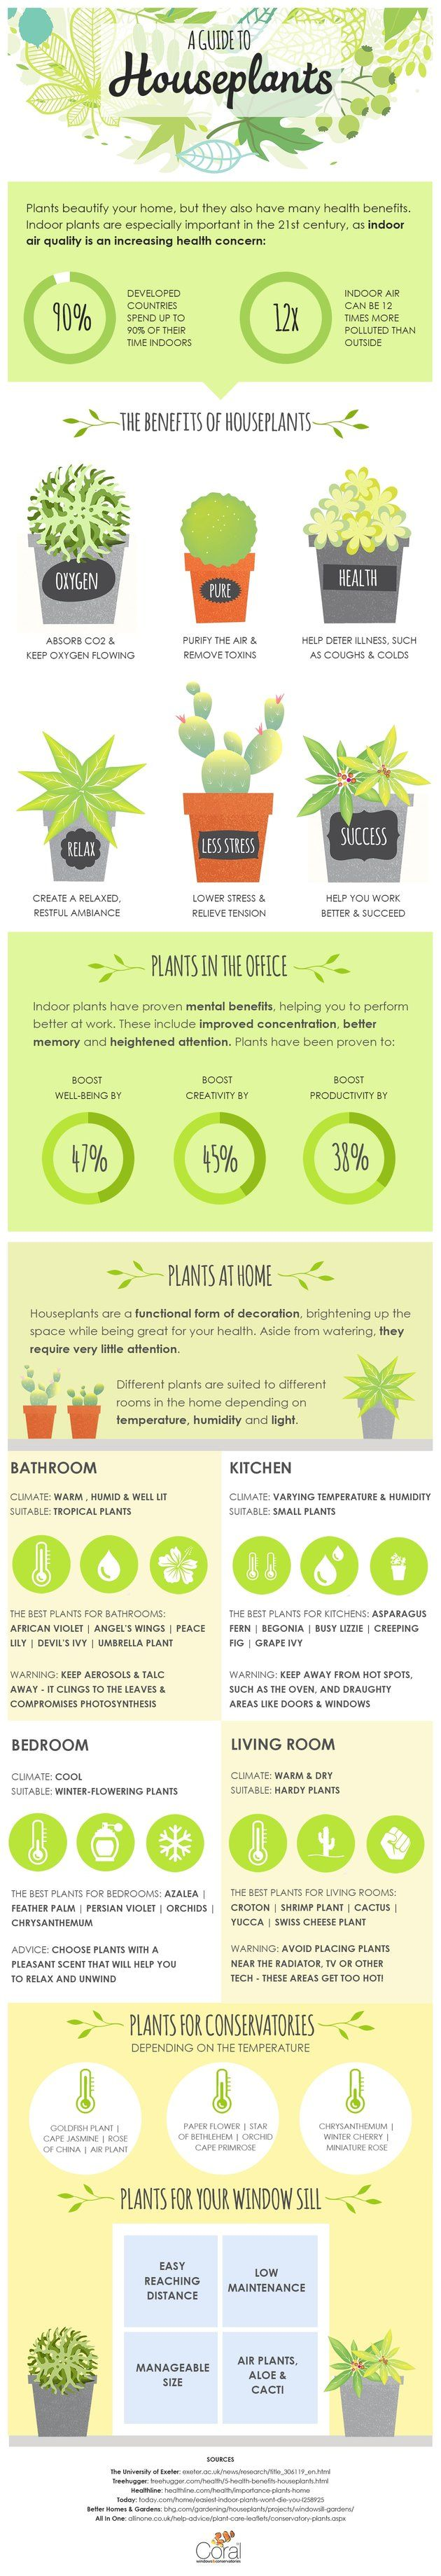 Infographic: A guide to house plants. From my house plants board